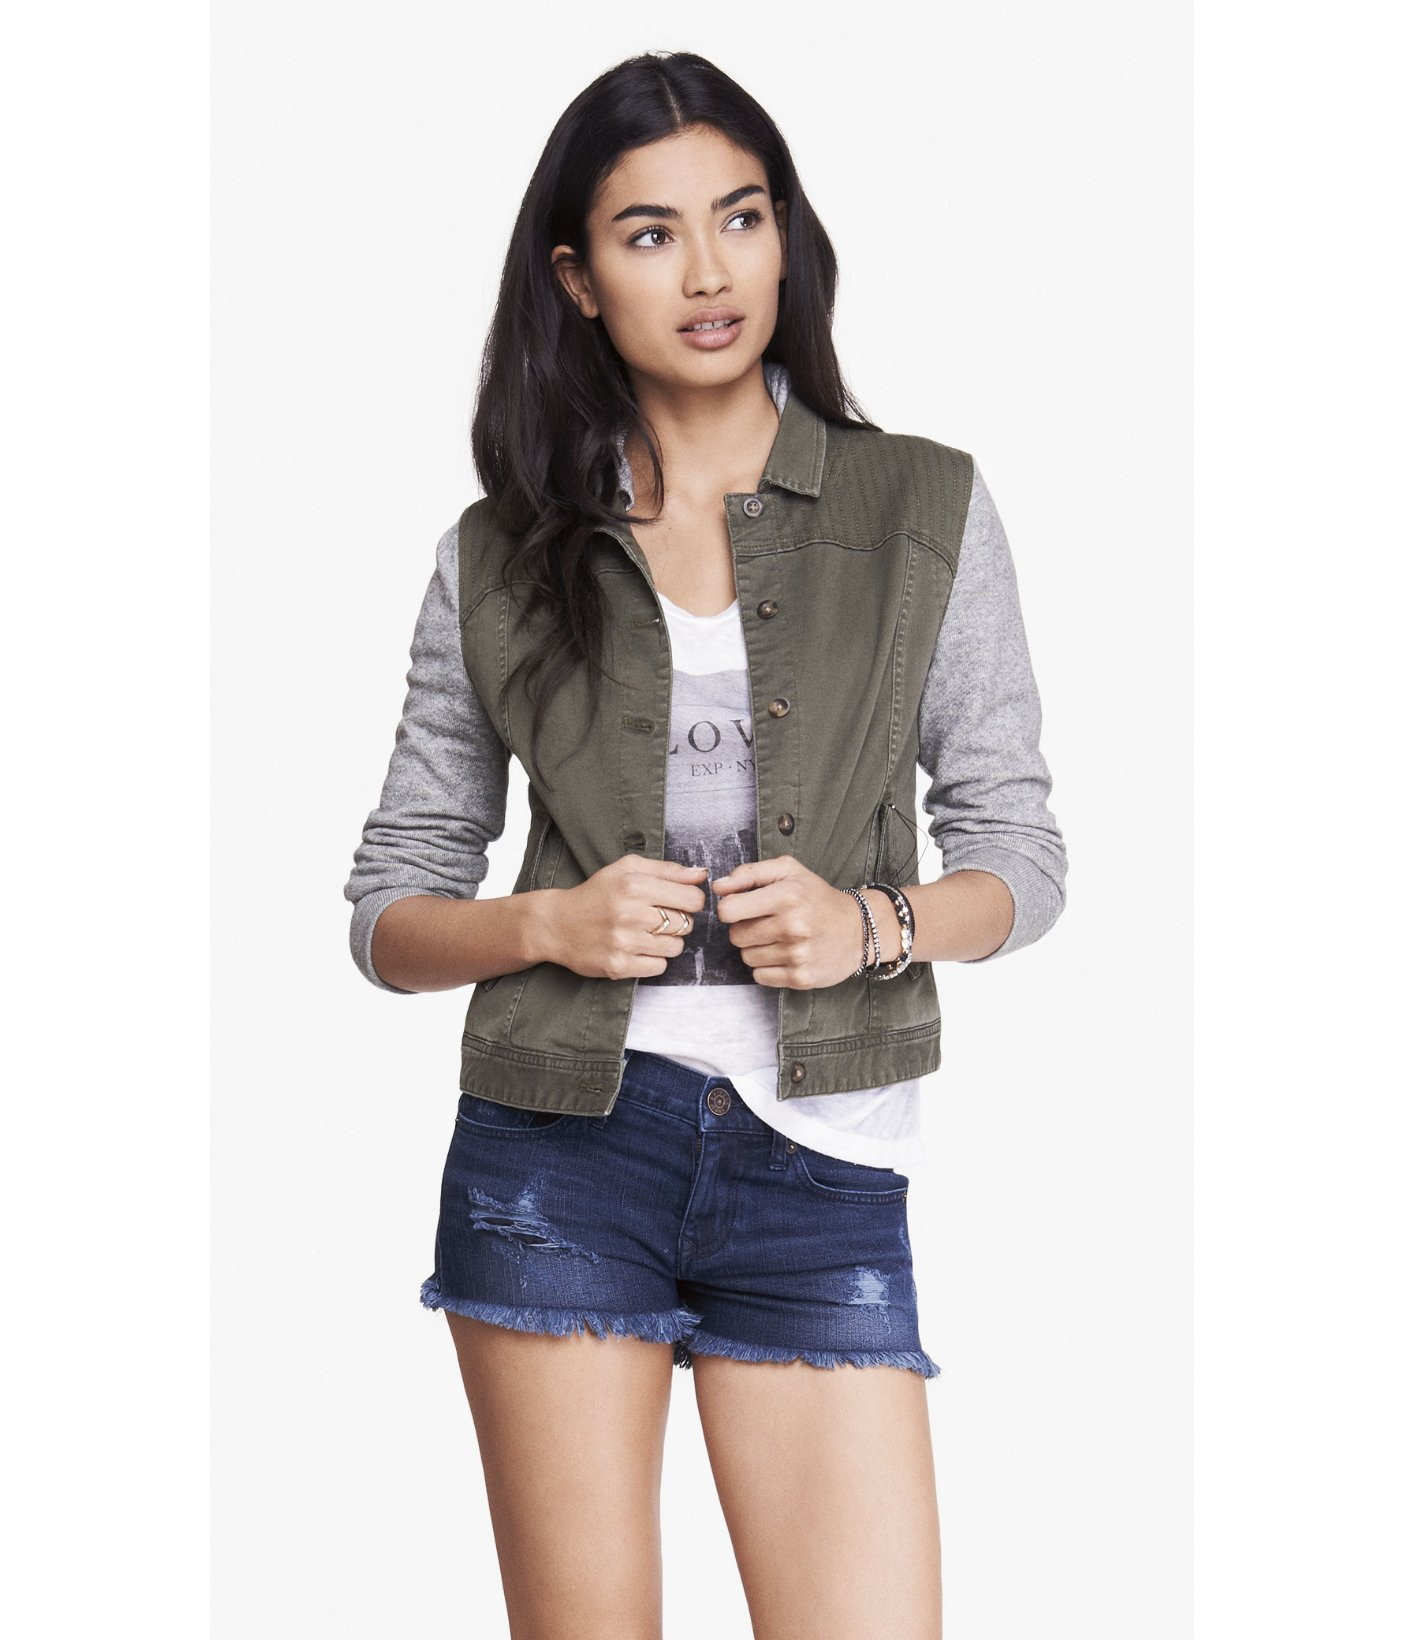 Sweatshirt jean jacket express – Modern fashion jacket photo blog